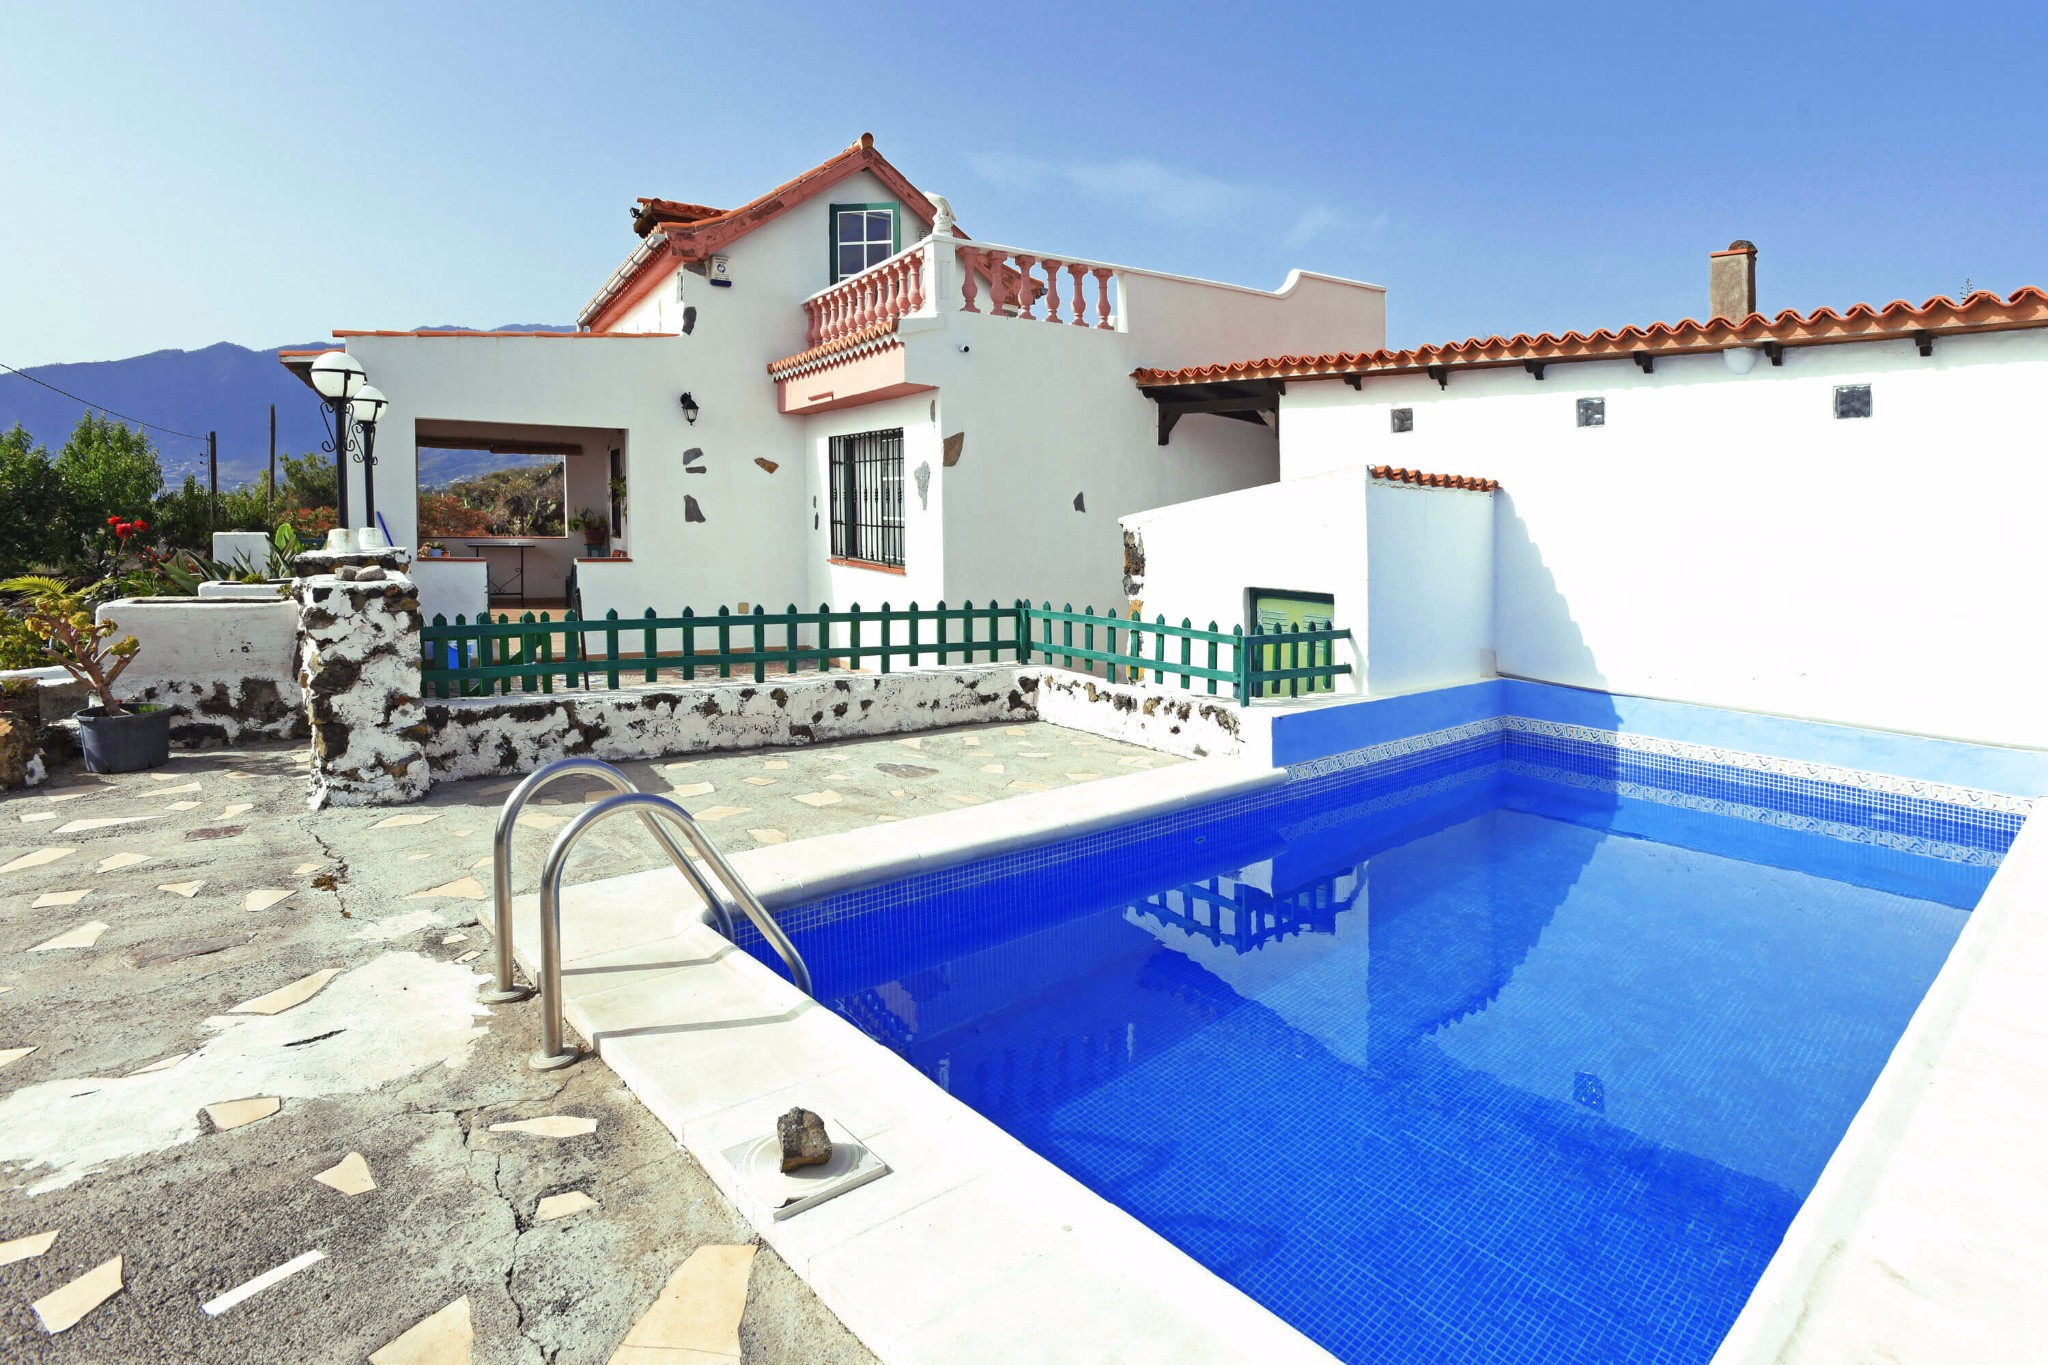 Authentic rural house with all amenities and private pool in a pleasant environment of Los Llanos